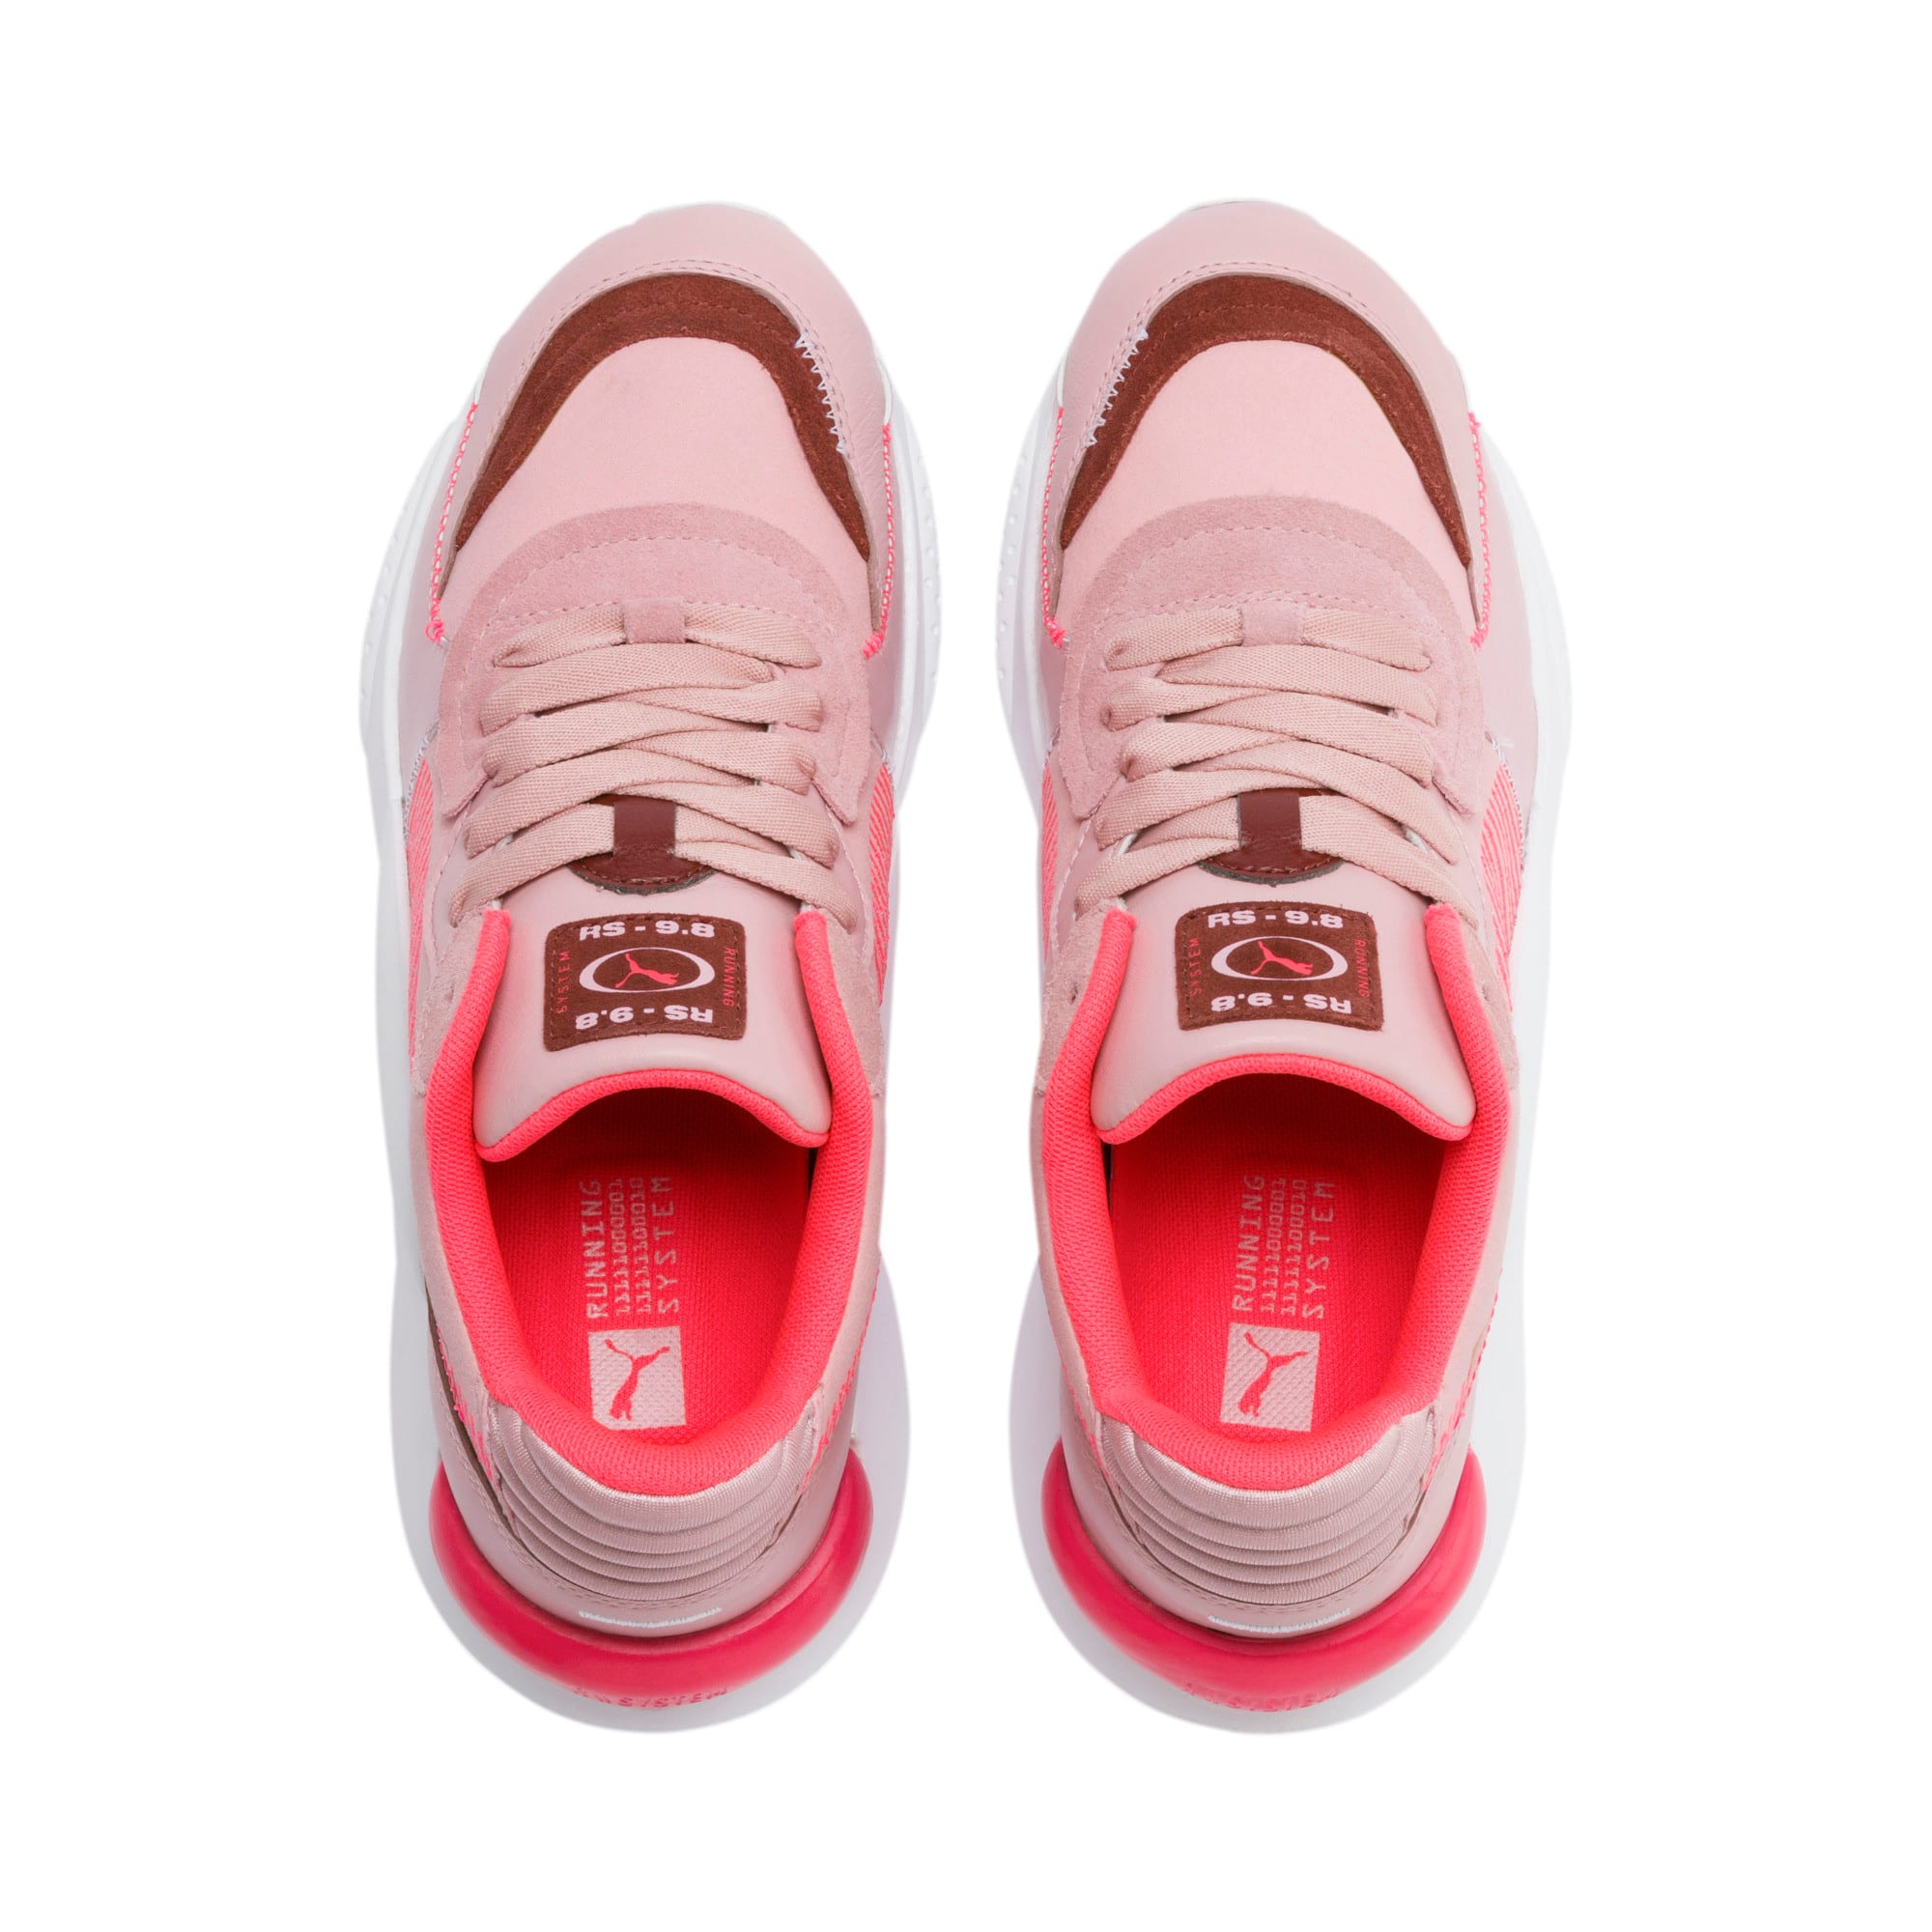 Thumbnail 7 of RS 9.8 Proto Women's Trainers, Bridal Rose, medium